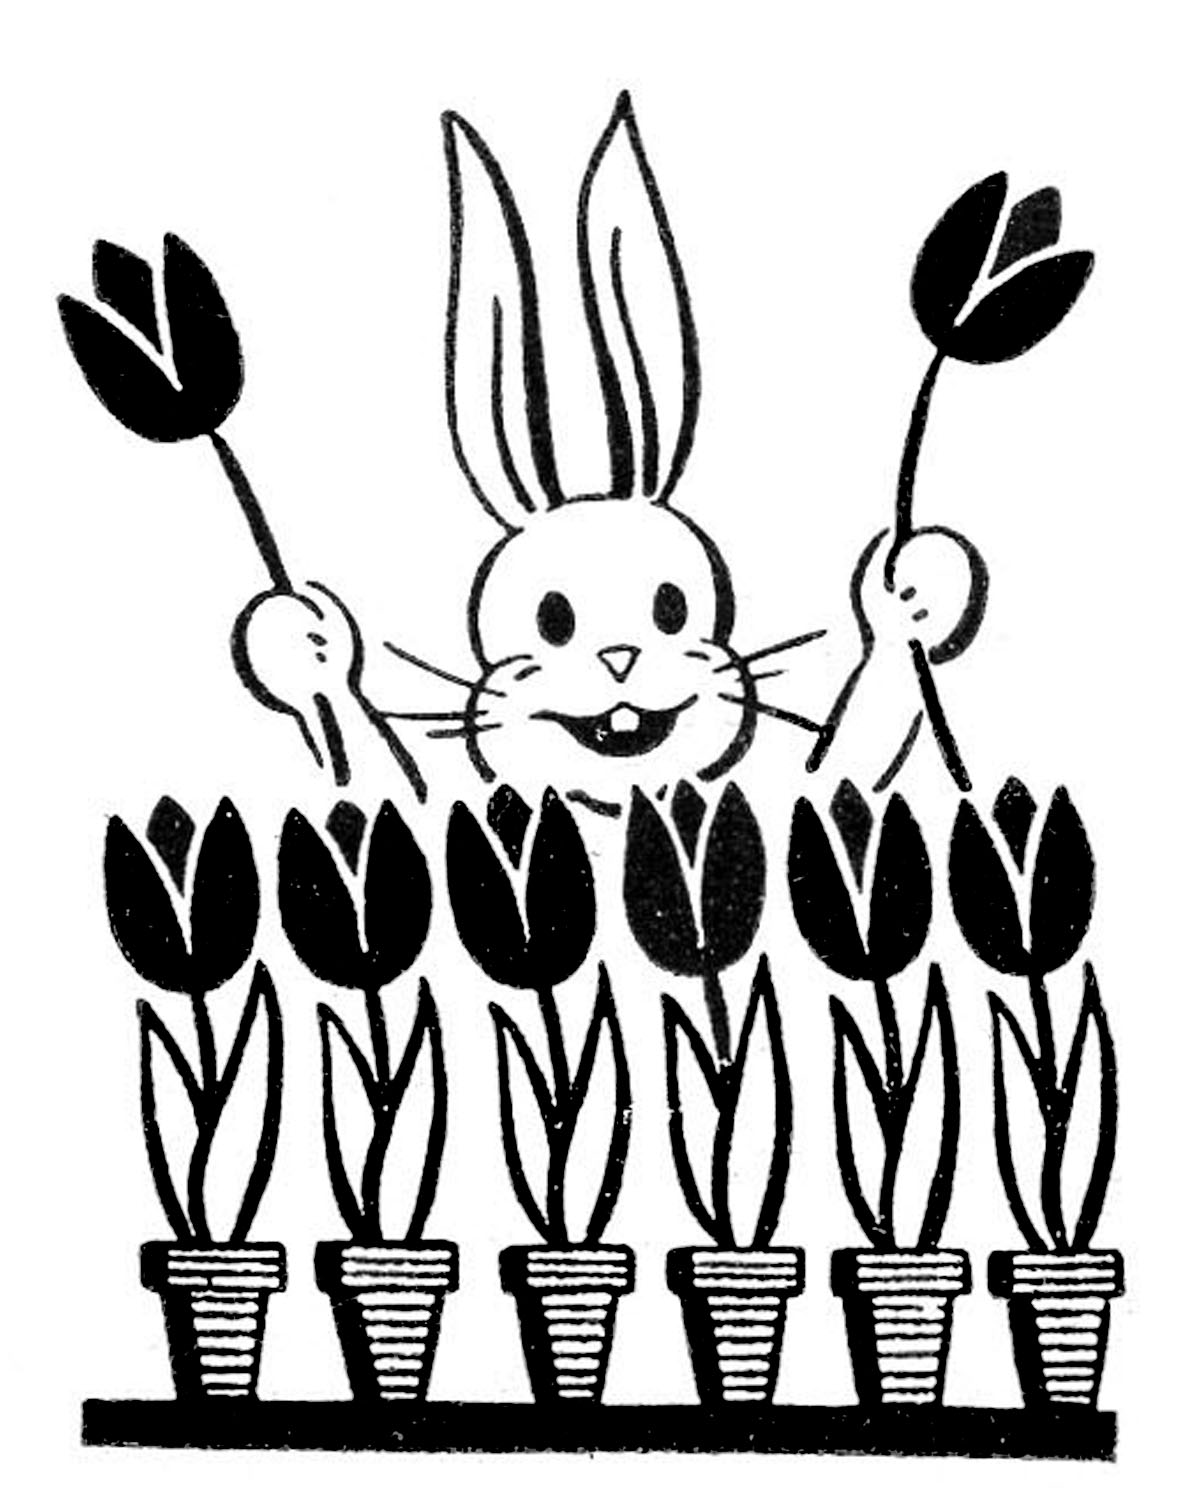 picture of easter bunny easter bunny face clipart free download on clipartmag bunny picture of easter